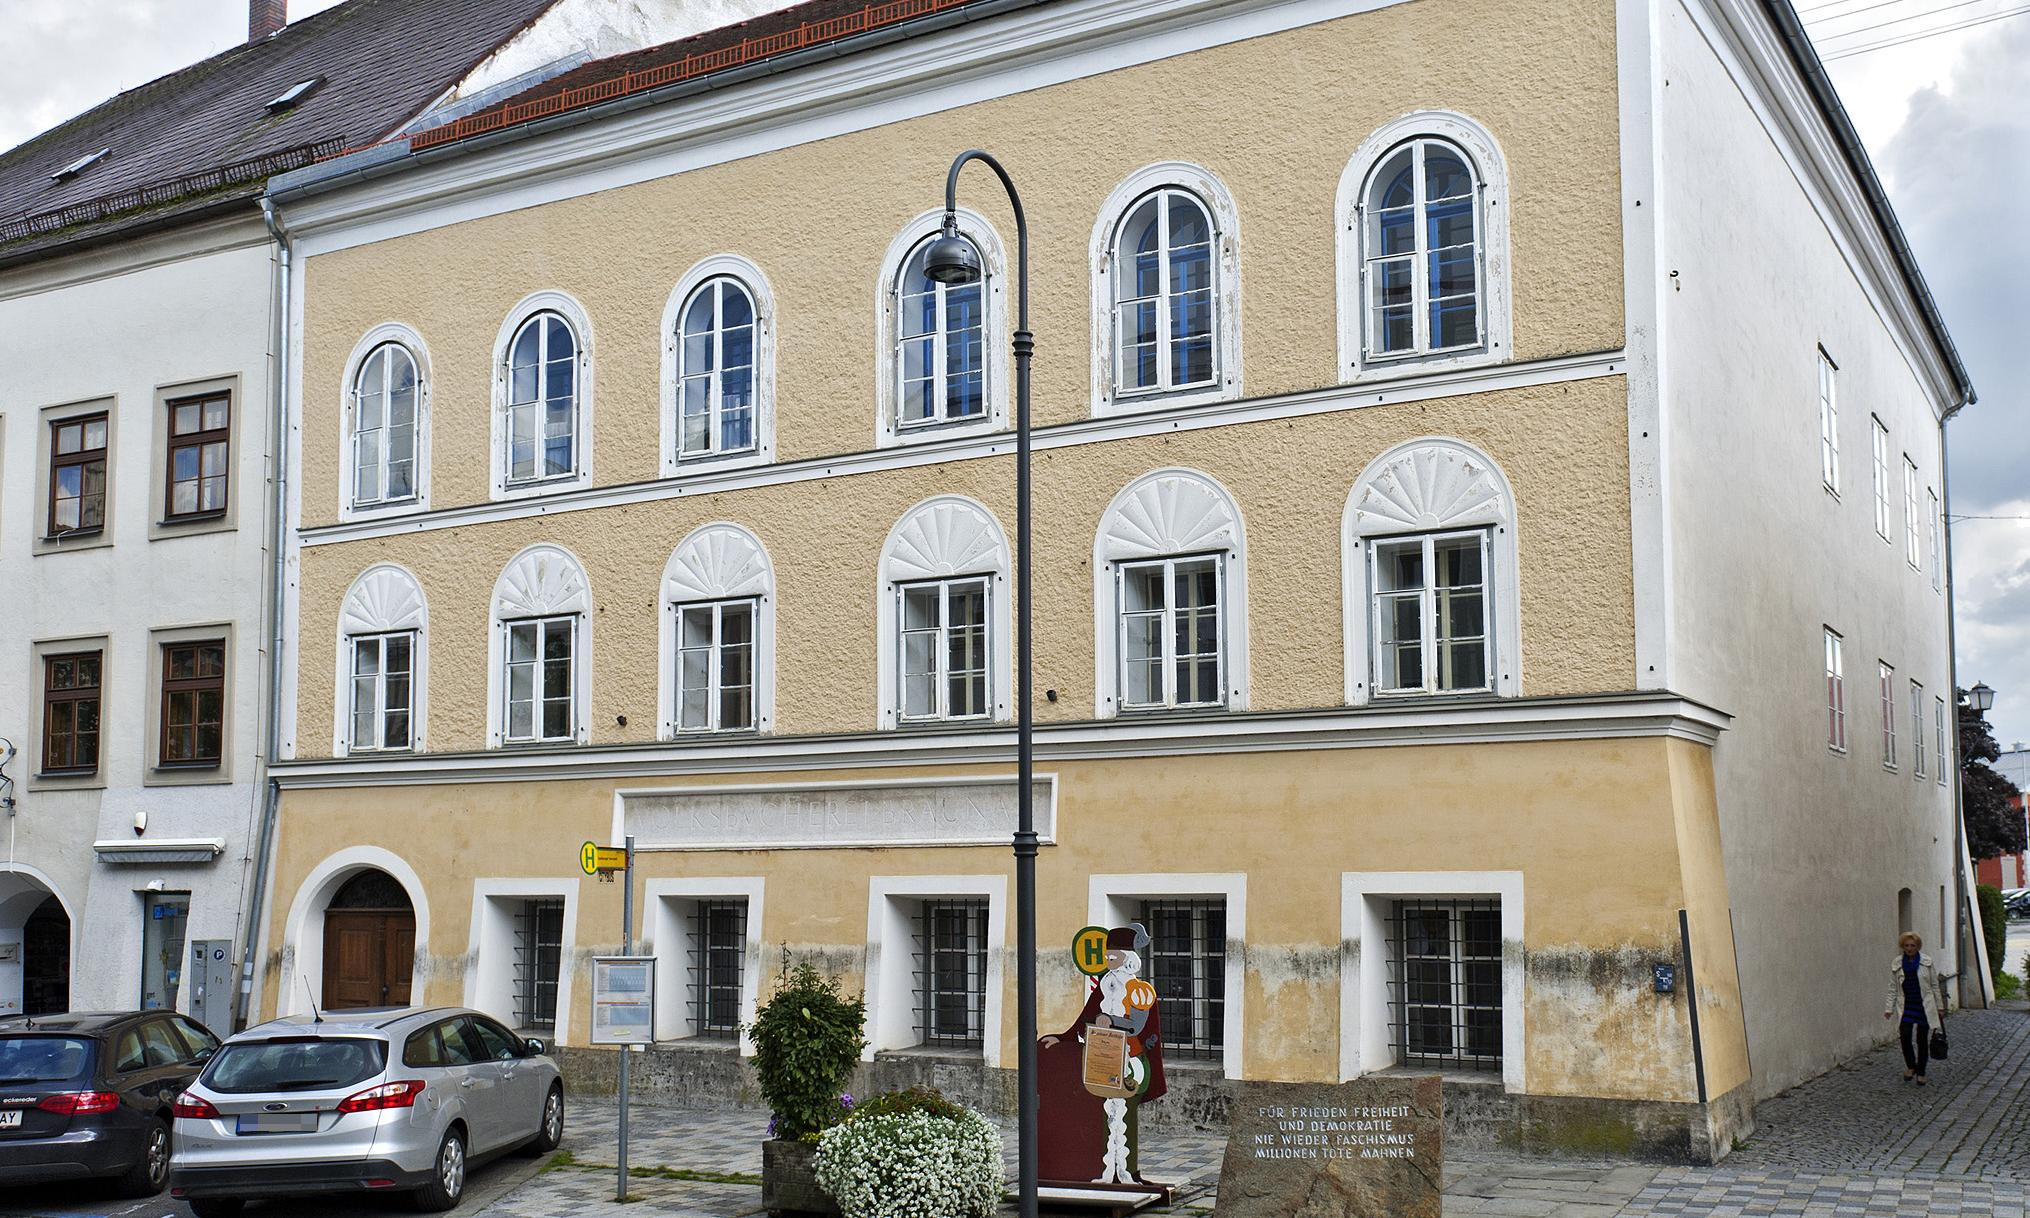 Austria to turn Adolf Hitler's birthplace into police station